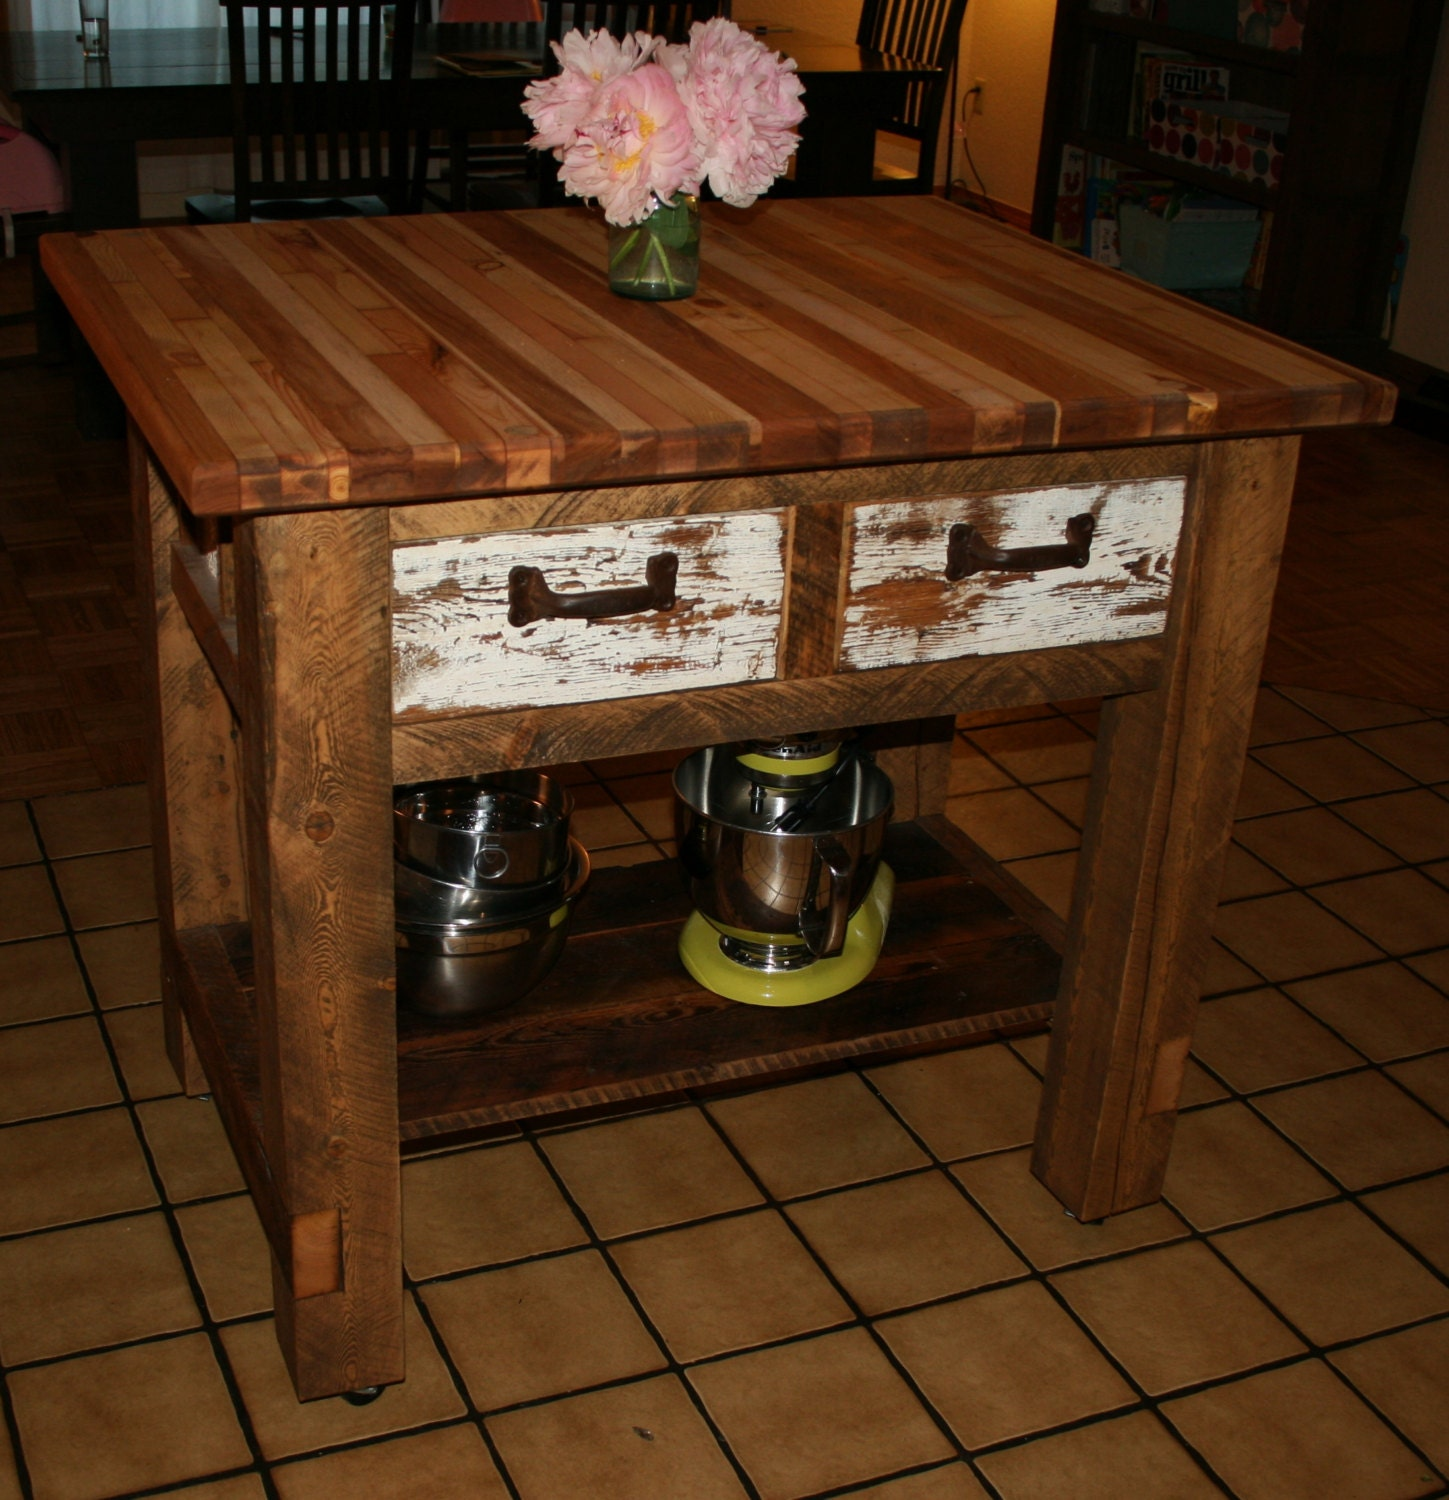 32 Simple Rustic Homemade Kitchen Islands: Reclaimed Rustic Kitchen Island By EchoPeakDesign On Etsy